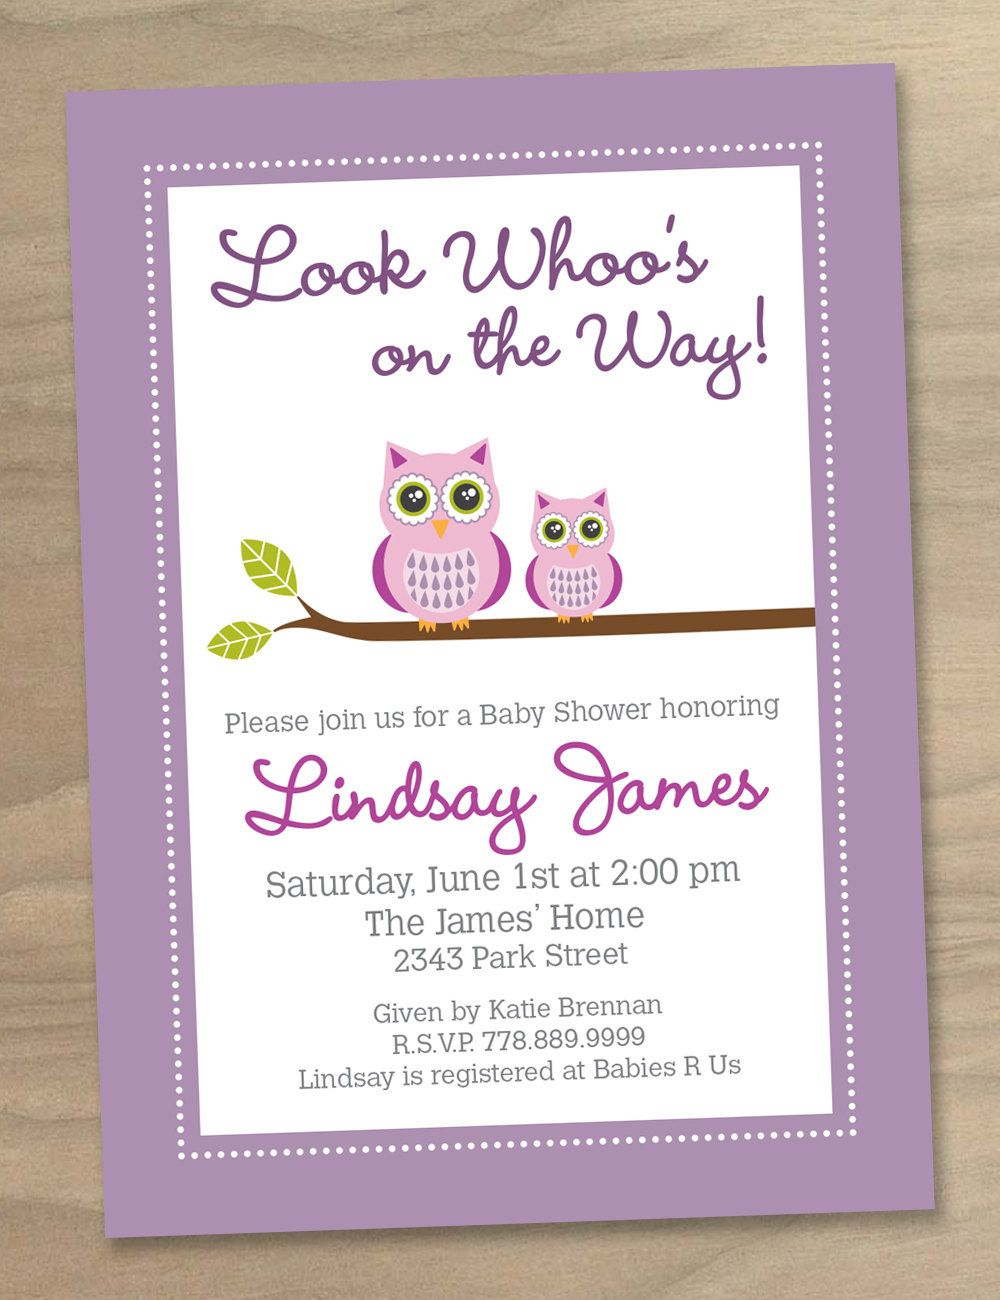 Baby Shower Invitation Pink Purple Cute Modern Two Owls Printable Digital File 16 00 Via Etsy